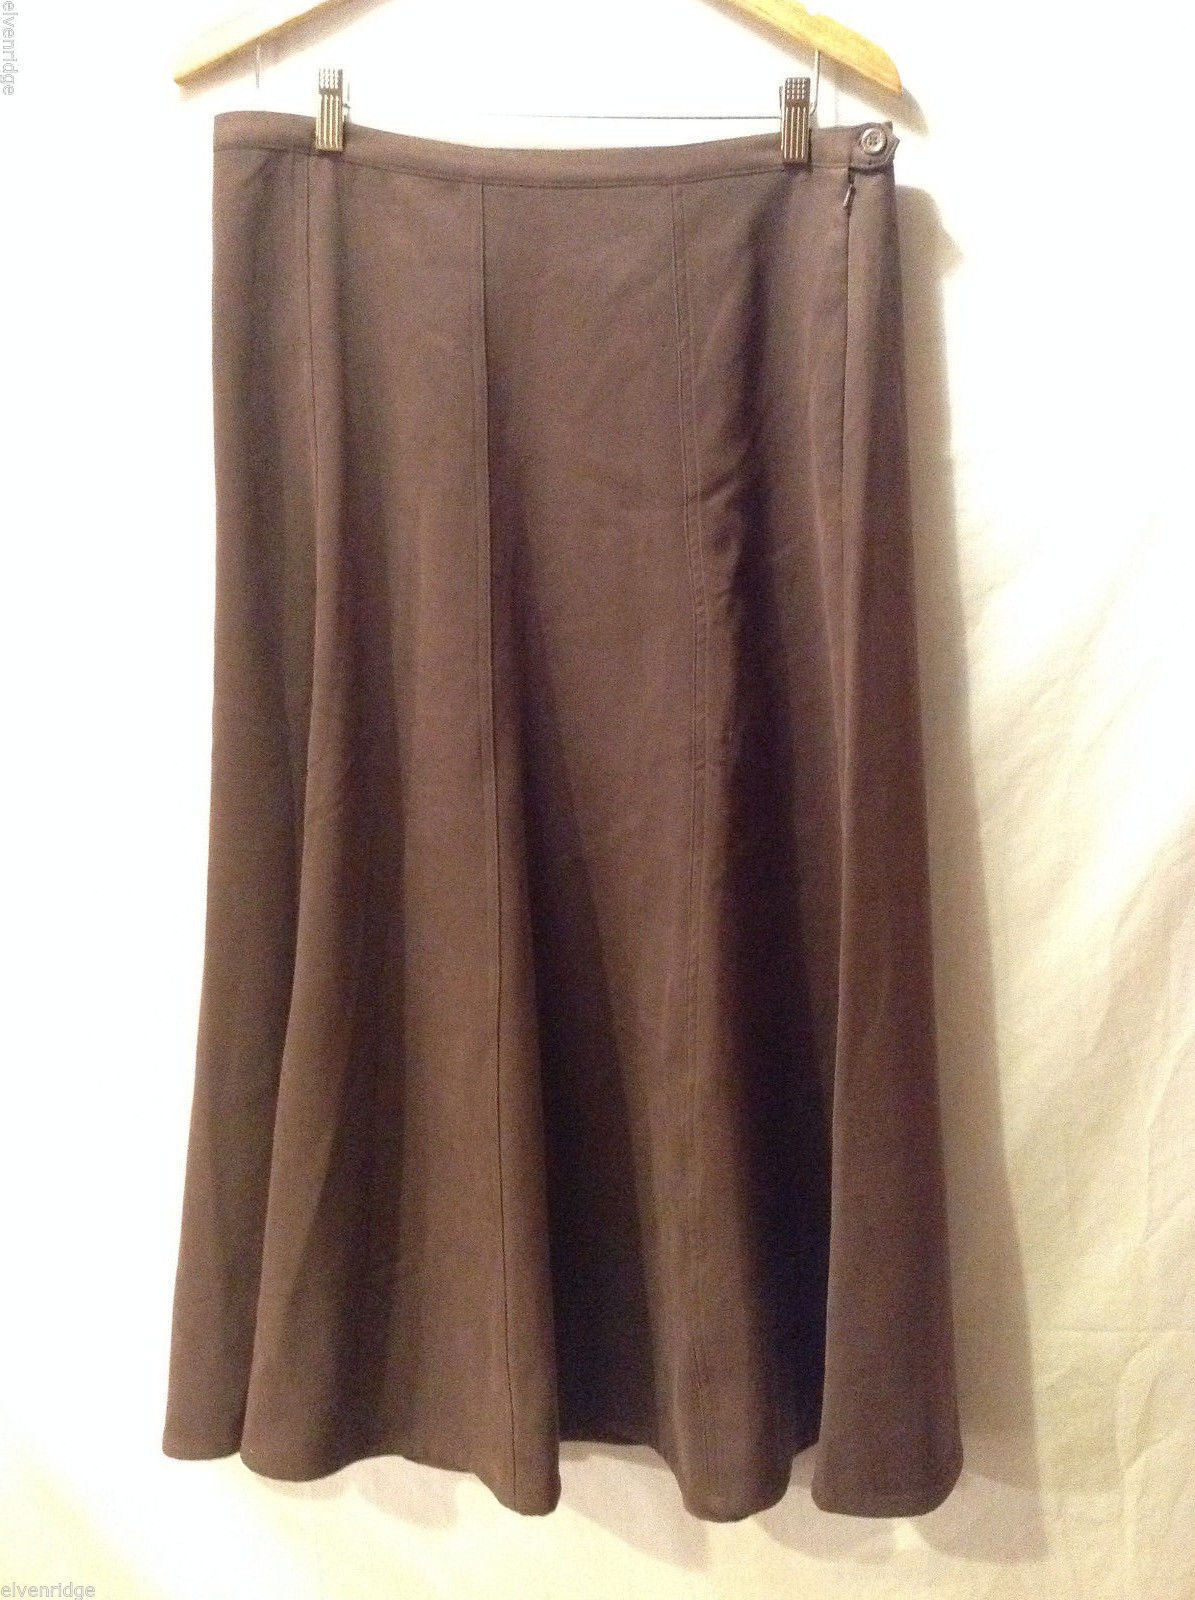 Denim & Co. Women's Size L Skirt Brown Suede-Like Maxi Length Side Button & Zip